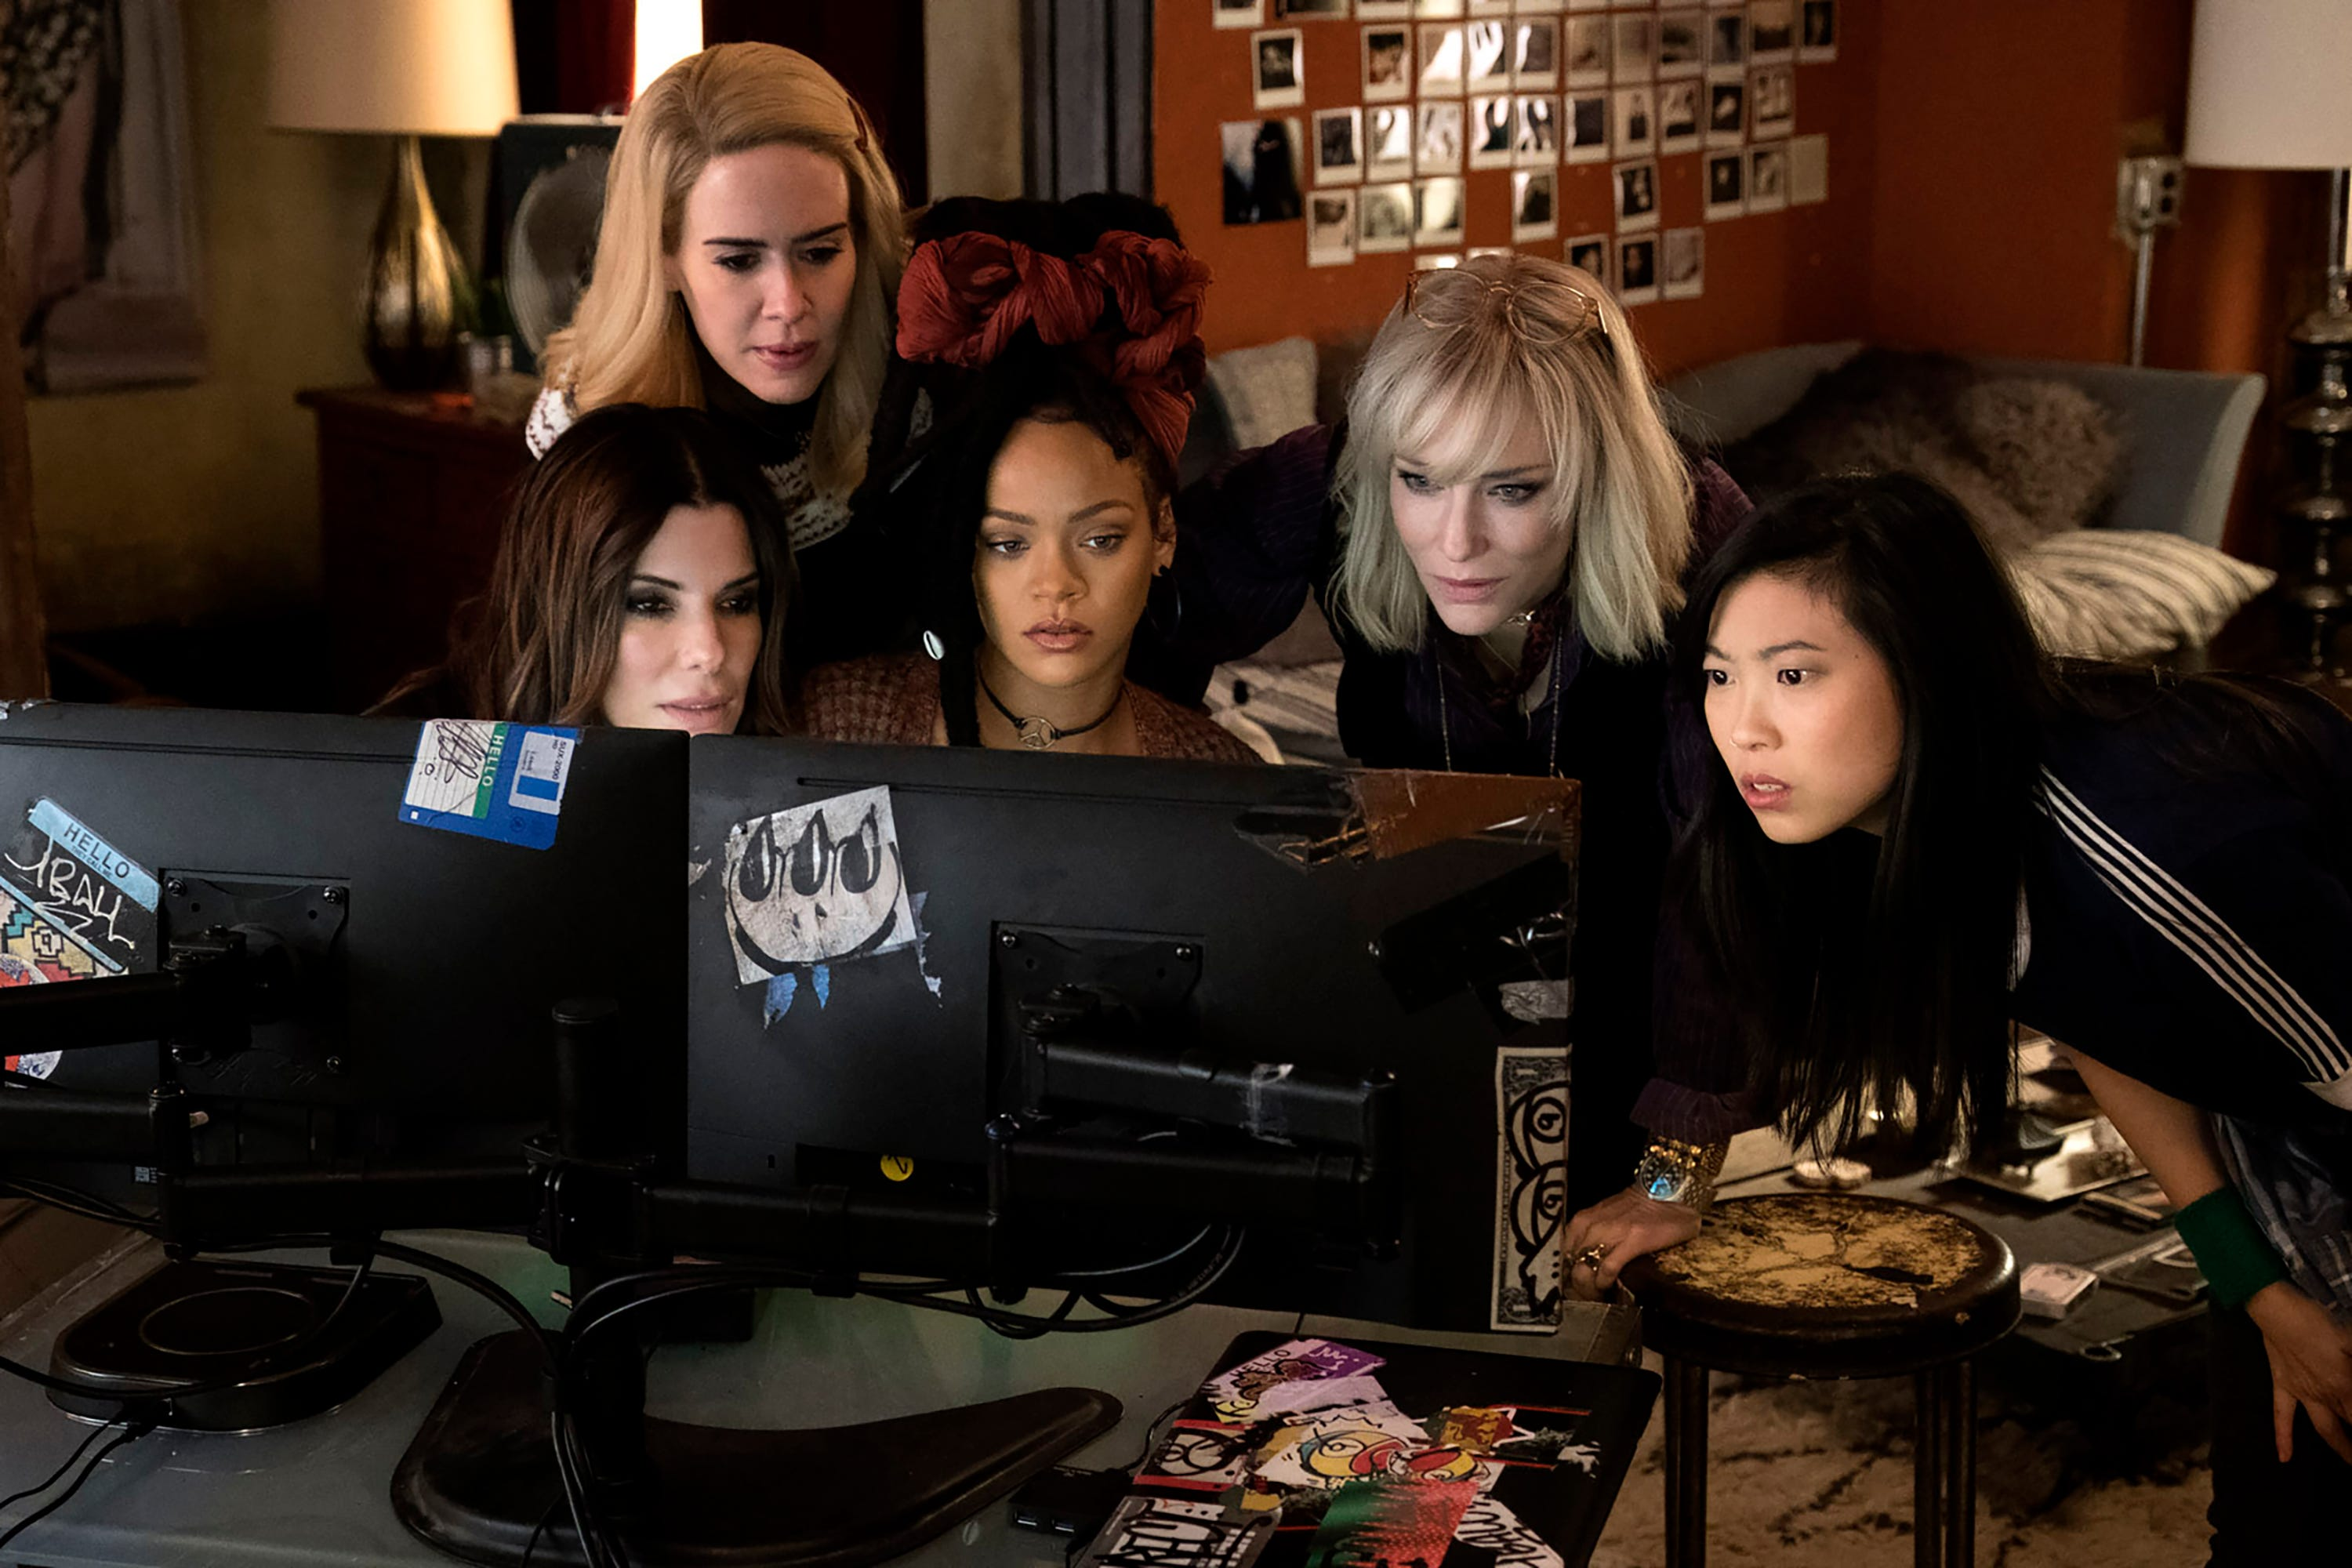 Discussion on this topic: Oceans 8 official trailer shows Sandra Bullocks , oceans-8-official-trailer-shows-sandra-bullocks/